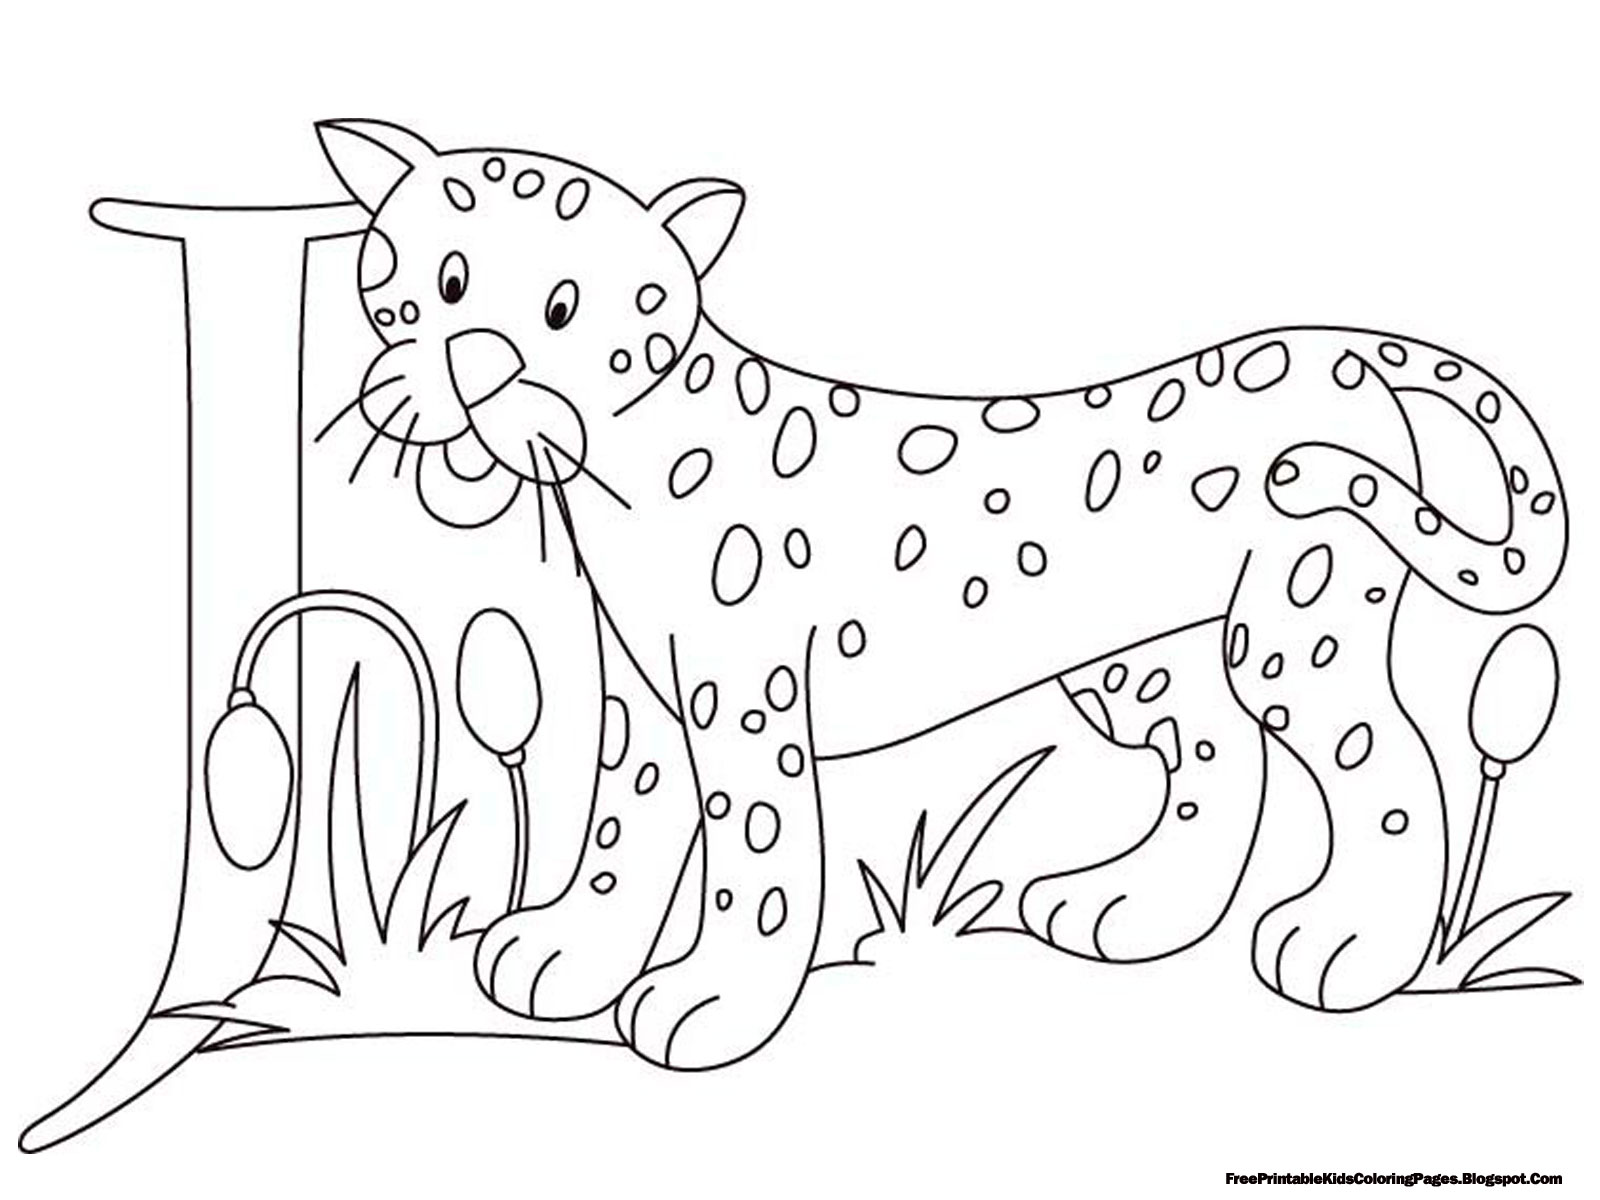 jaguar e type coloring pages - photo#25